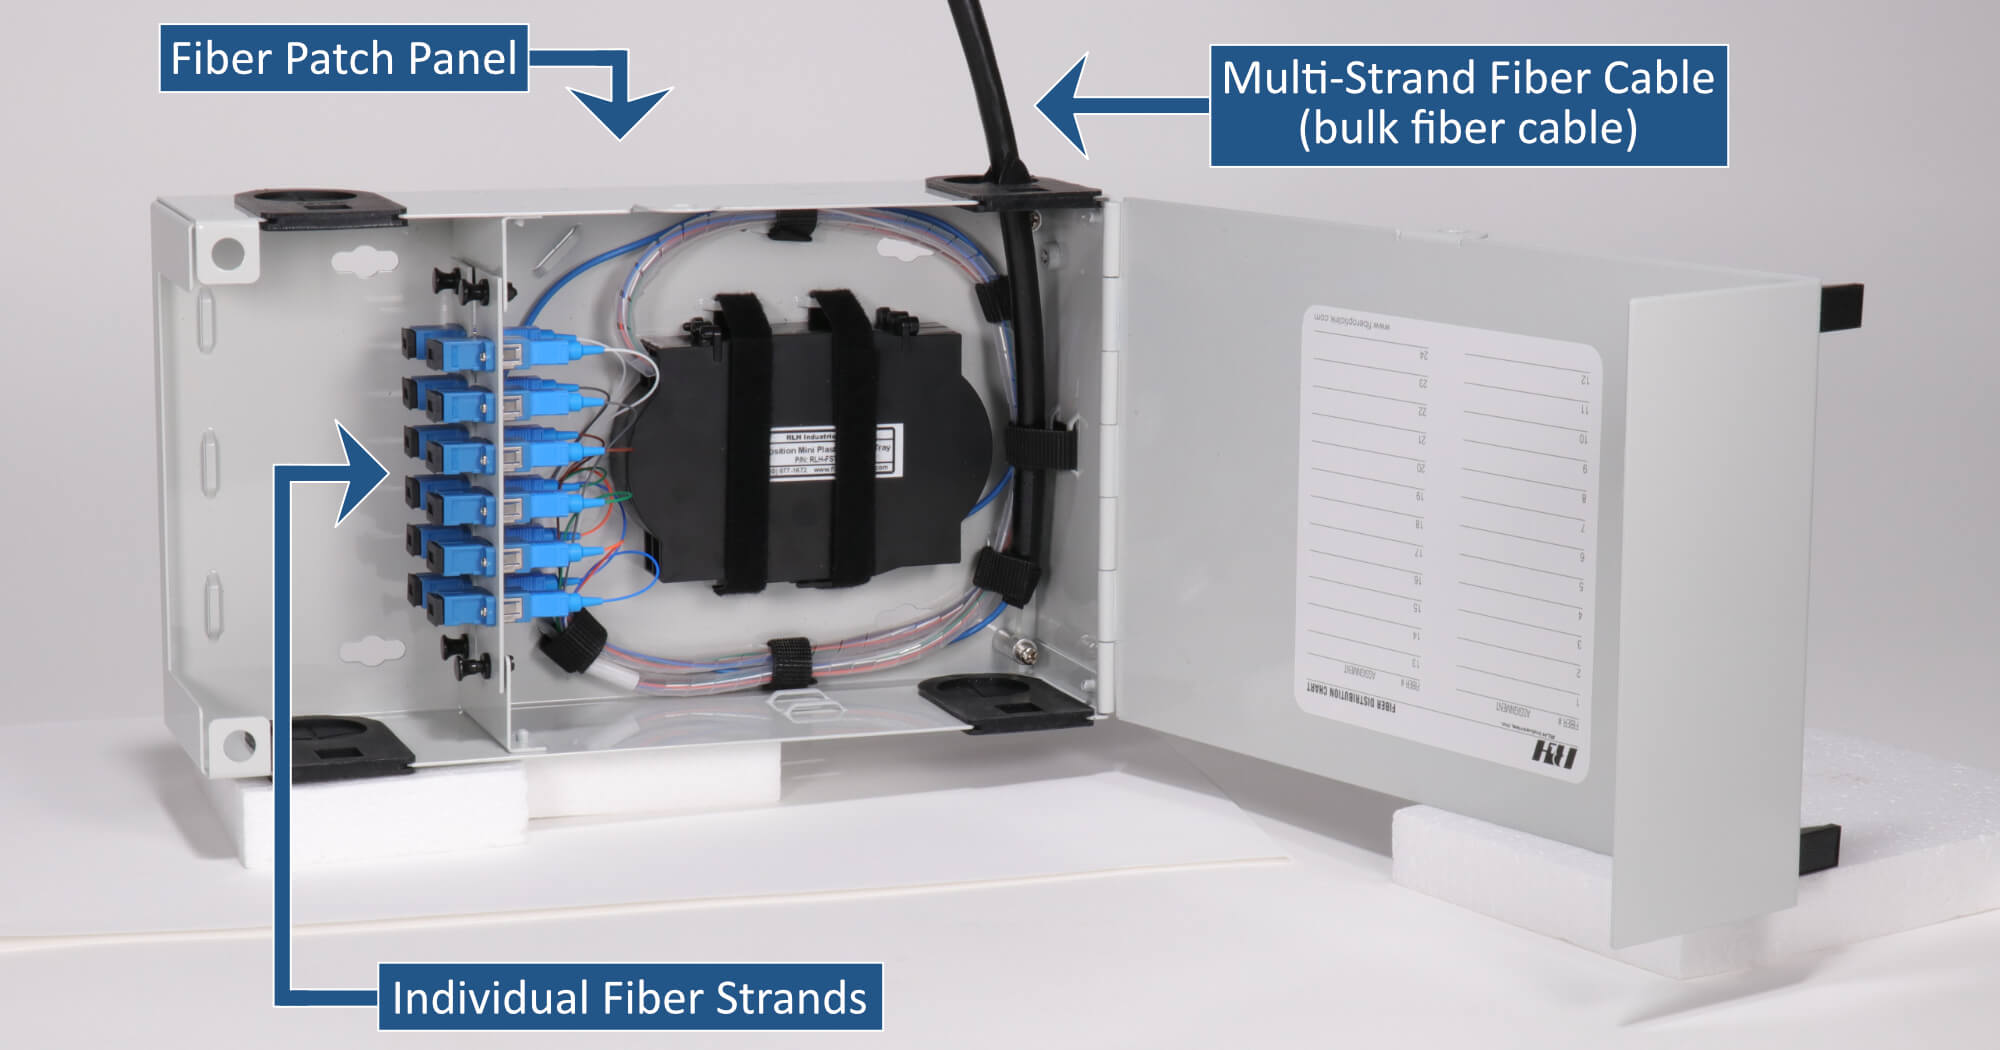 What is a Fiber Patch Panel?